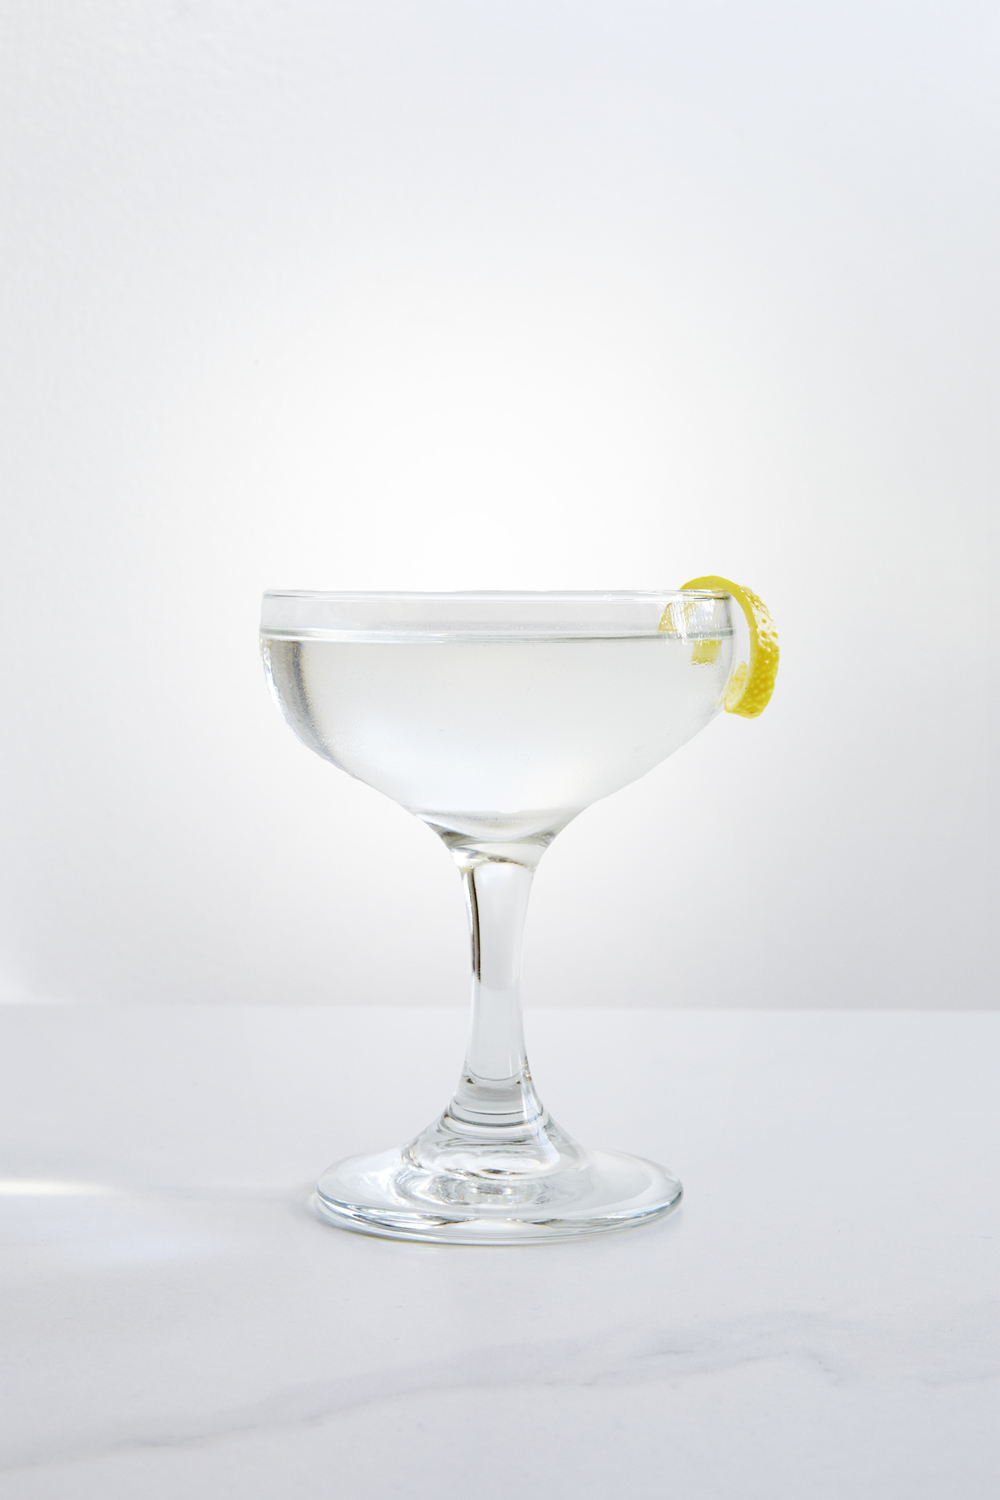 OJAI   2 oz Chareau  1 oz Old Tom Gin  2 Dashes Maraschino  1 Dash Miracle Mile Celery Bitters  Stir Ingredients over ice. Strain into coupe and garnish with a lemon twist.